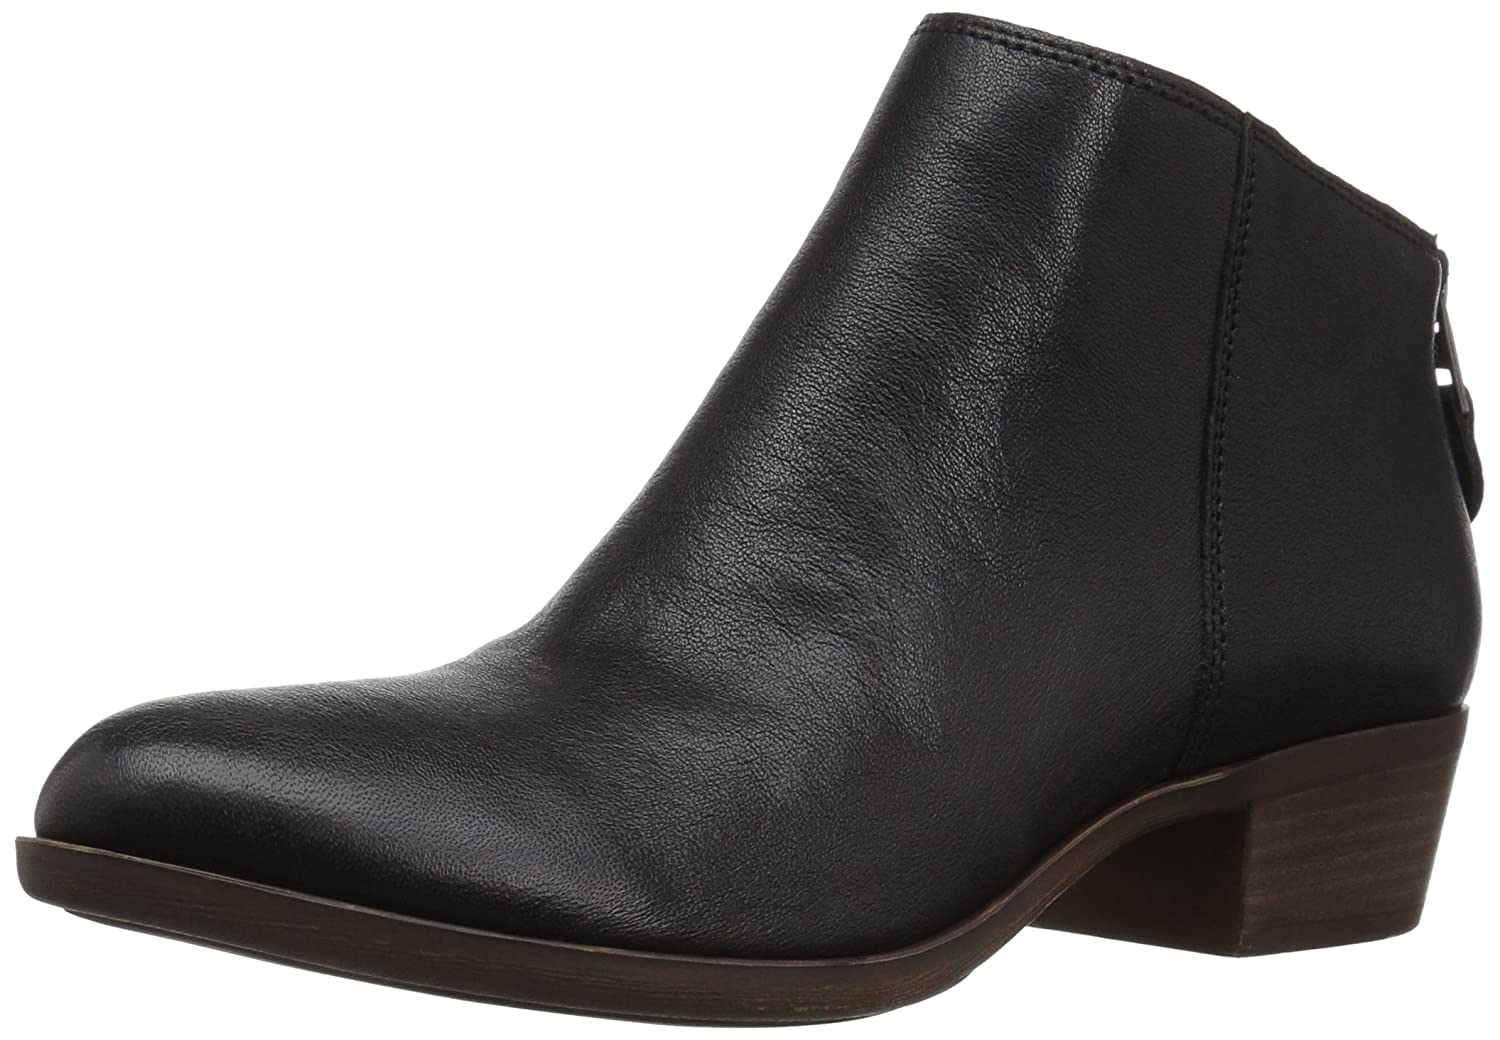 Lucky Brand Women's Bremma Ankle Boot B07C89PCMB W 6 W US|Black